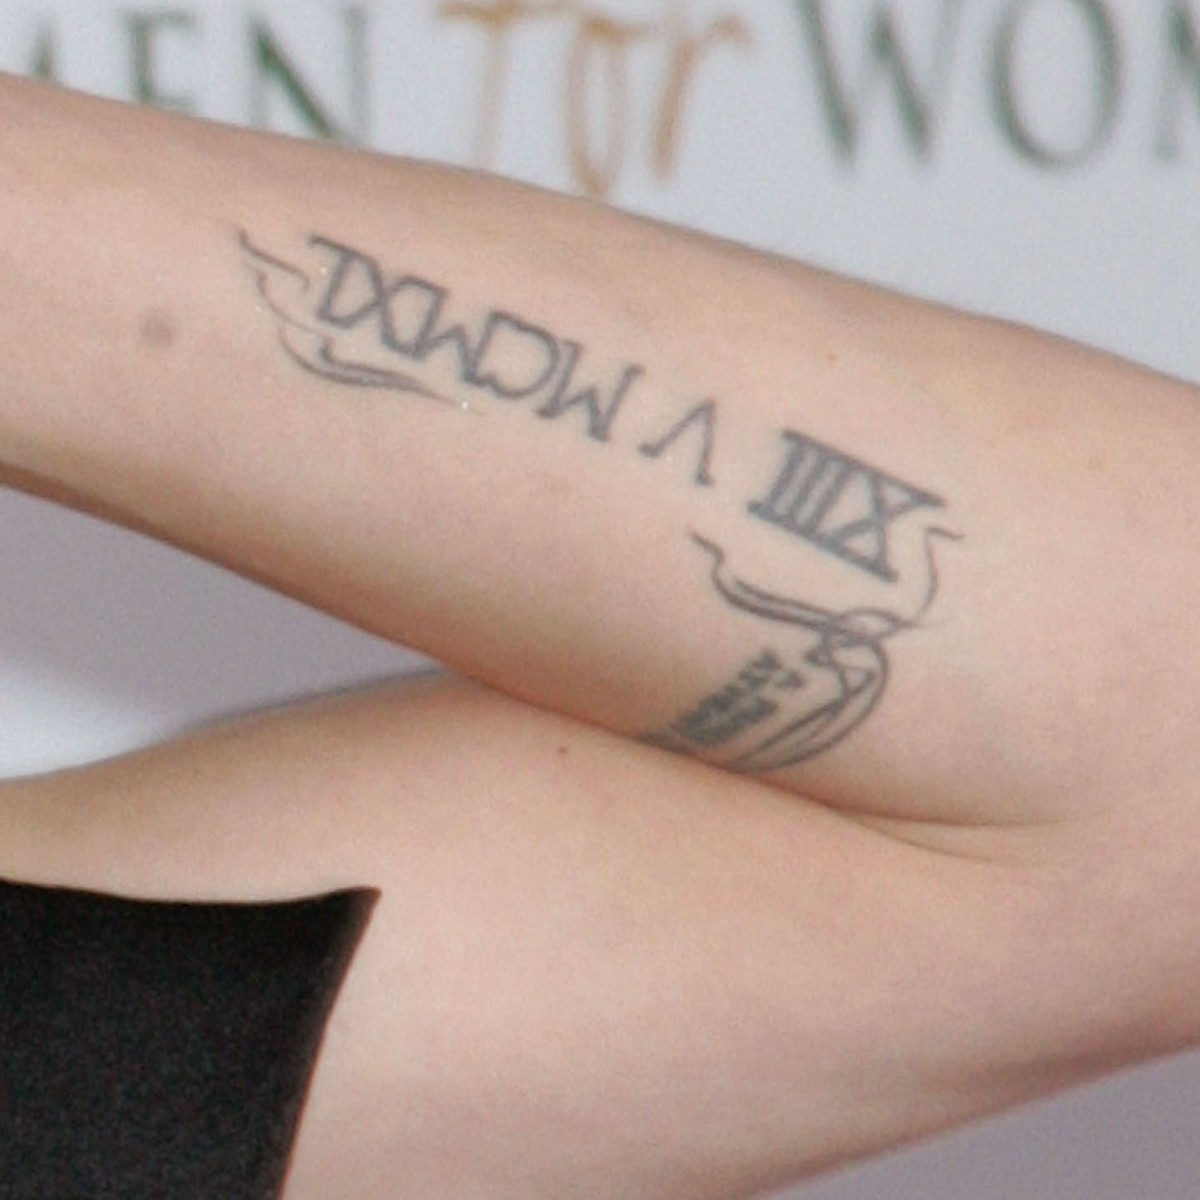 Angelina Jolie's Tattoos: Did You Know She Has One for Brad Pitt?